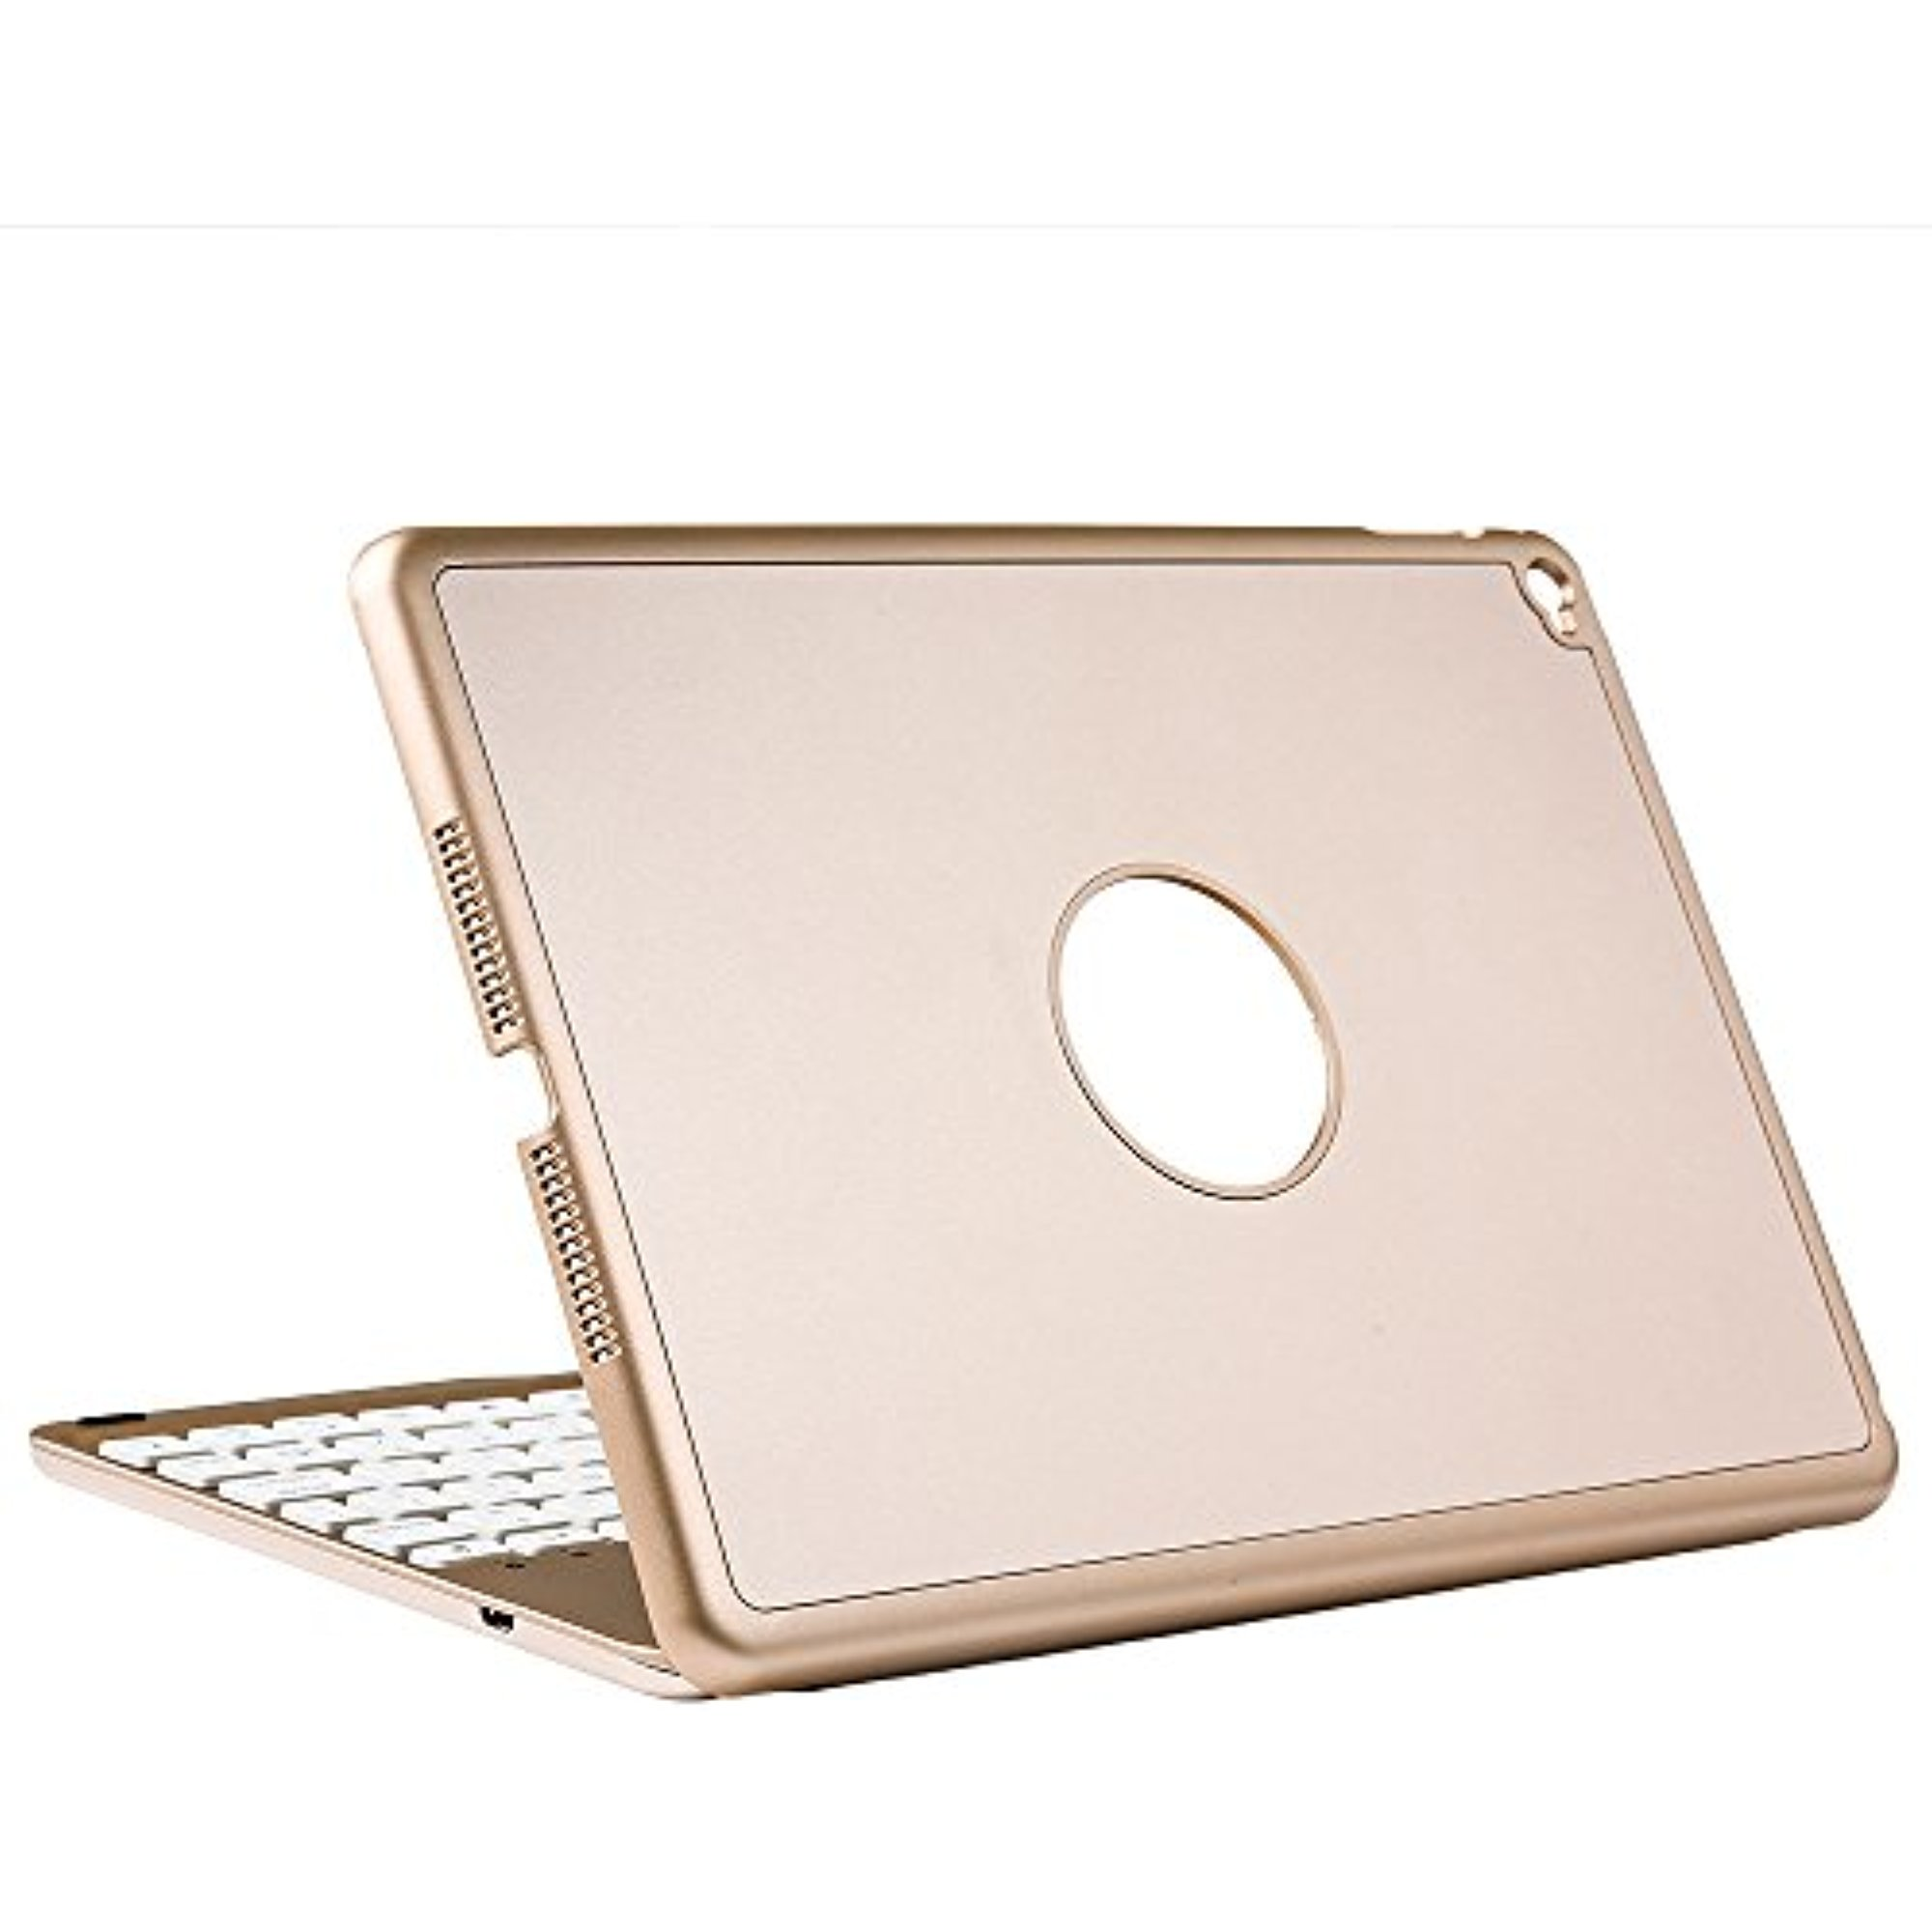 iEGrow 7 Colors Backlit F8S+ Slim Bluetooth Keyboard Protective case for iPad Air 2 A1566/A1567 Release in 2014, Gold